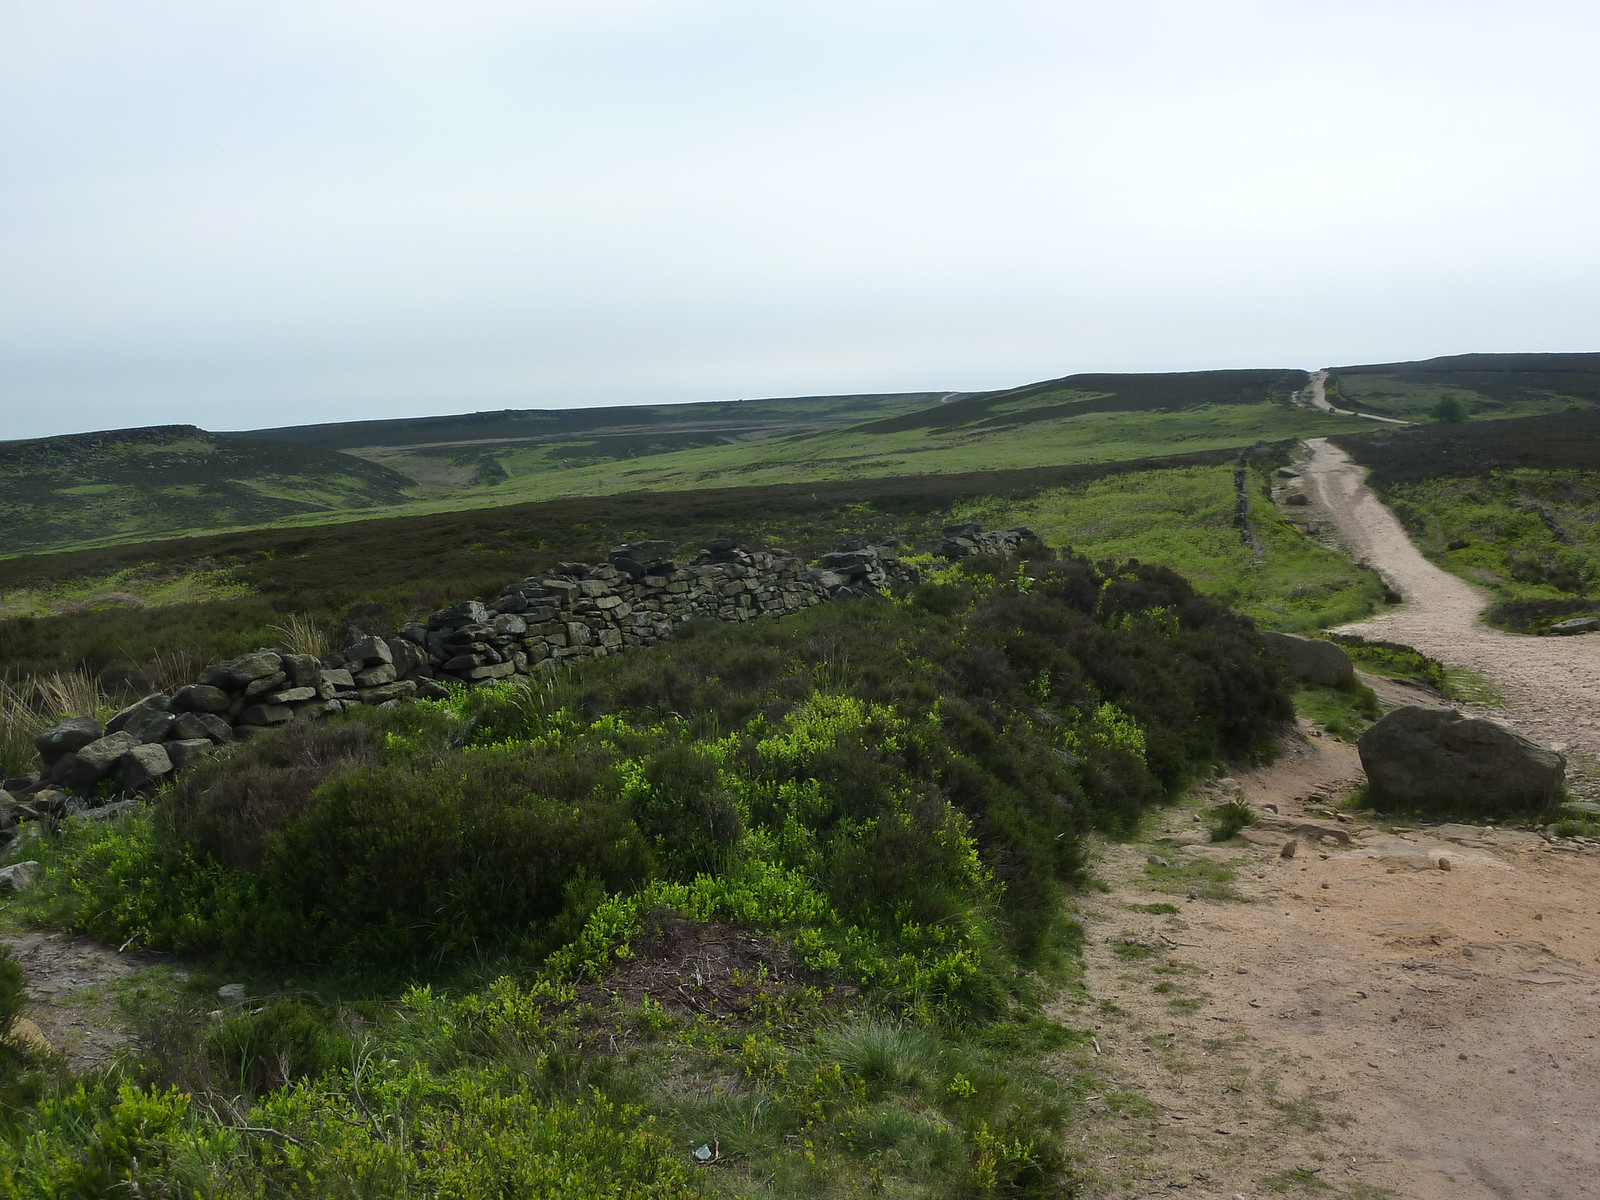 Houndkirk Road, through Burbage and Houndkirk Moors SWC Walk 266 - Sheffield to Bamford (via Burbage Rocks and Stanage Edge) or to Moscar Lodge